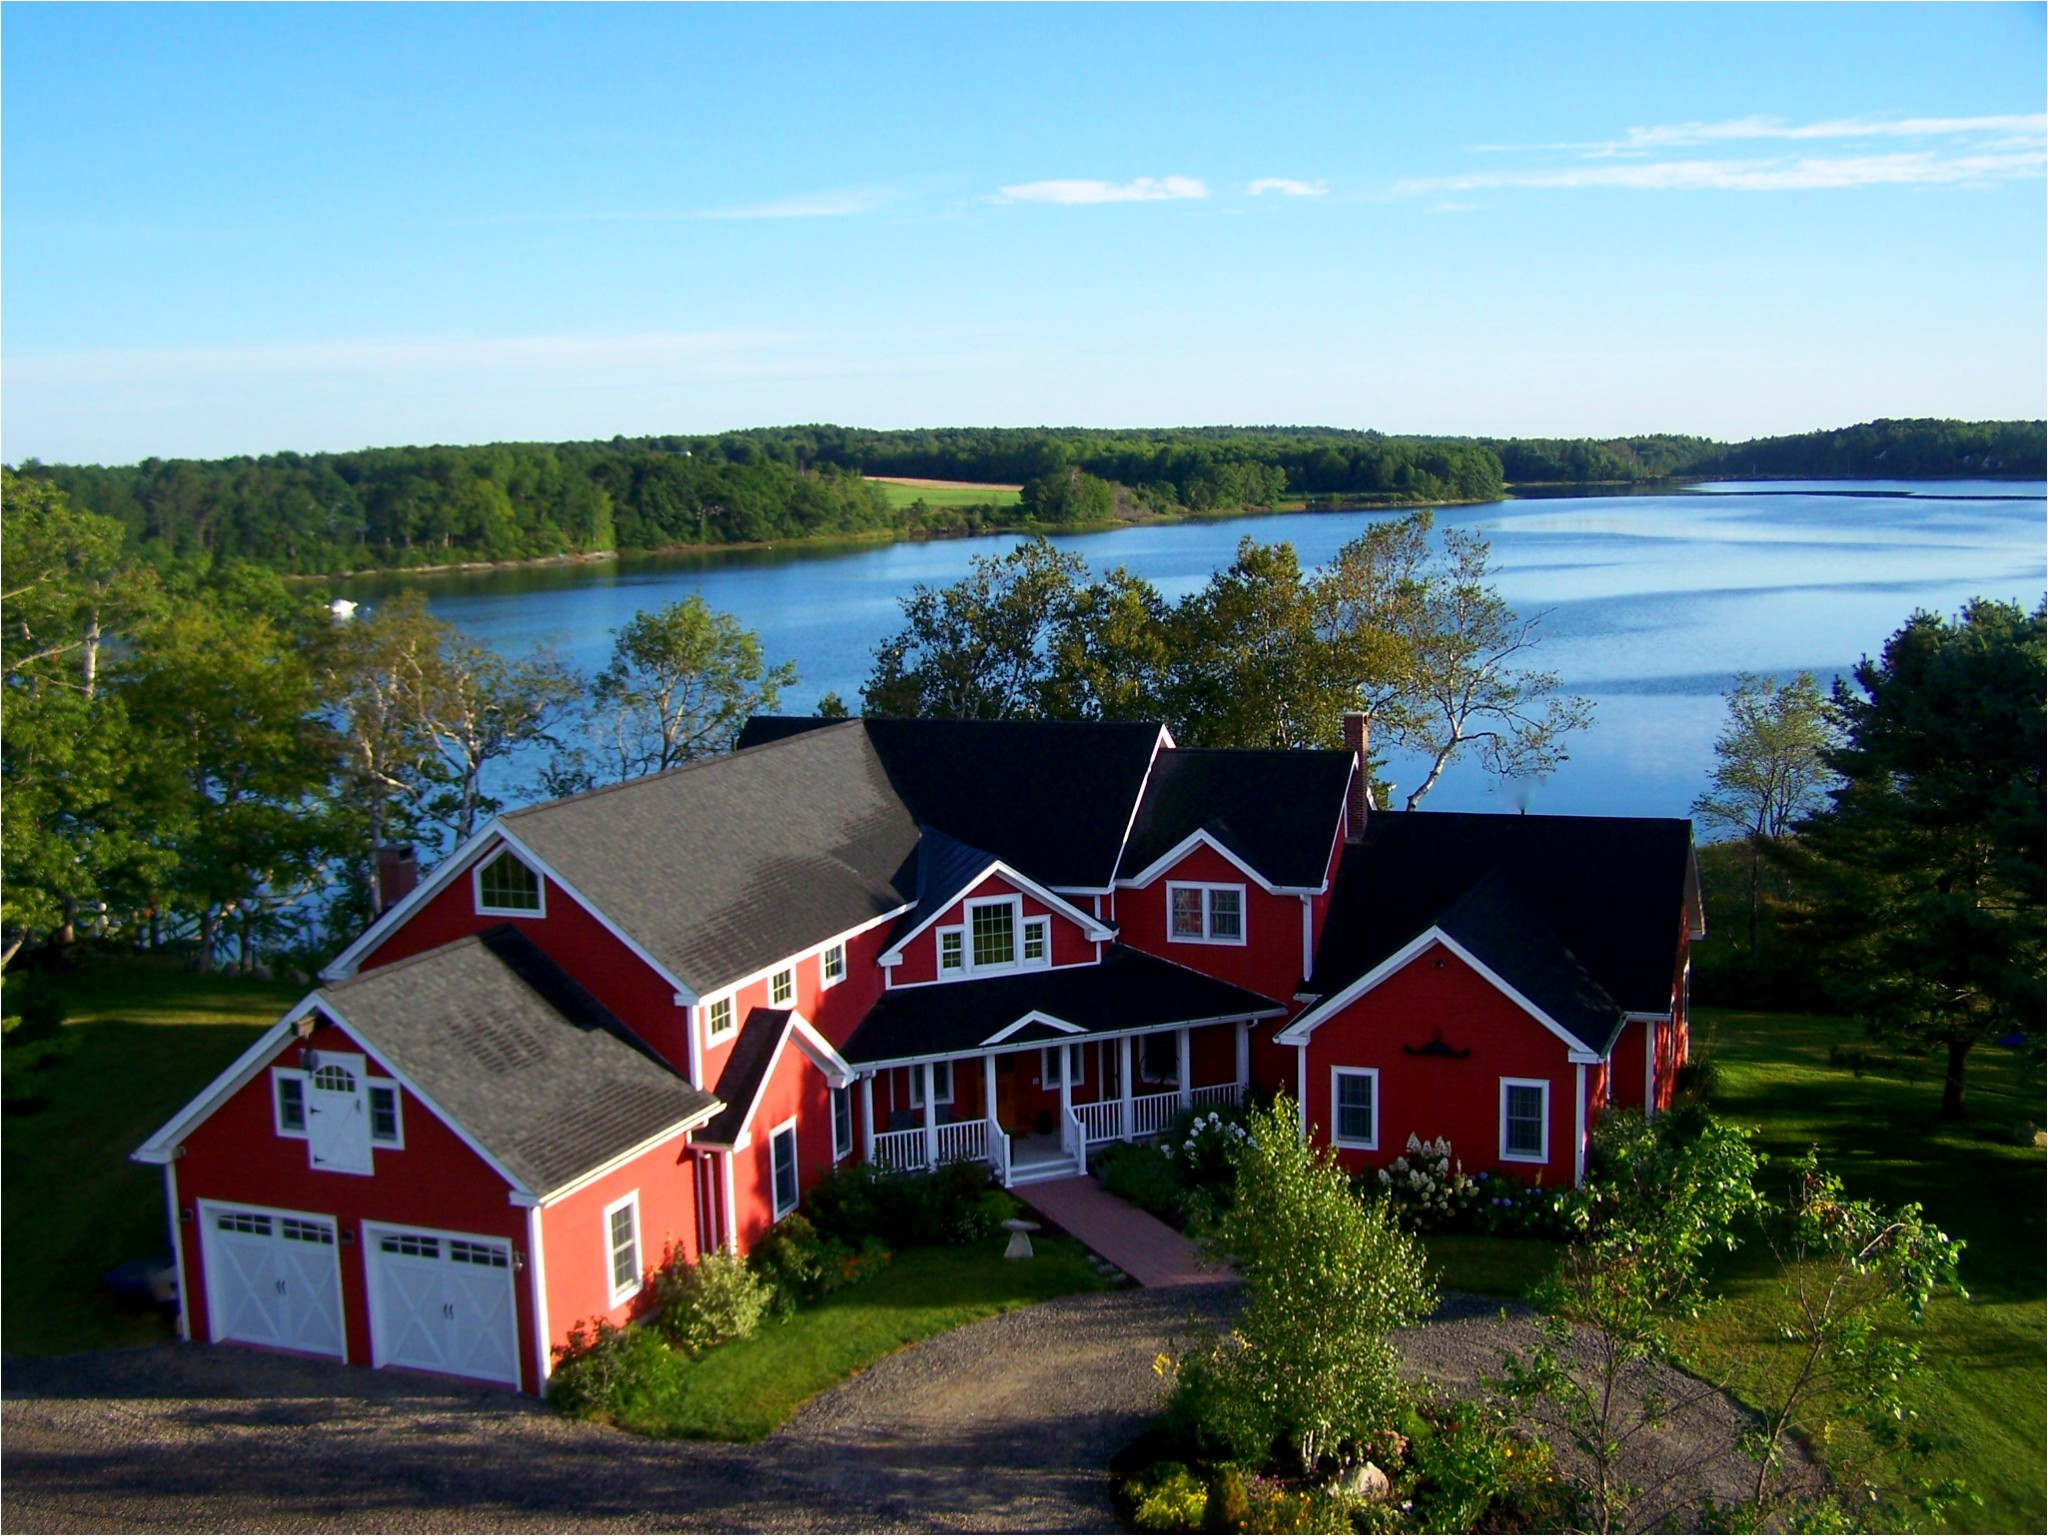 Single Family Home for Sale at Gables by the Sea 374 High Head Road Harpswell, Maine 04079 United States